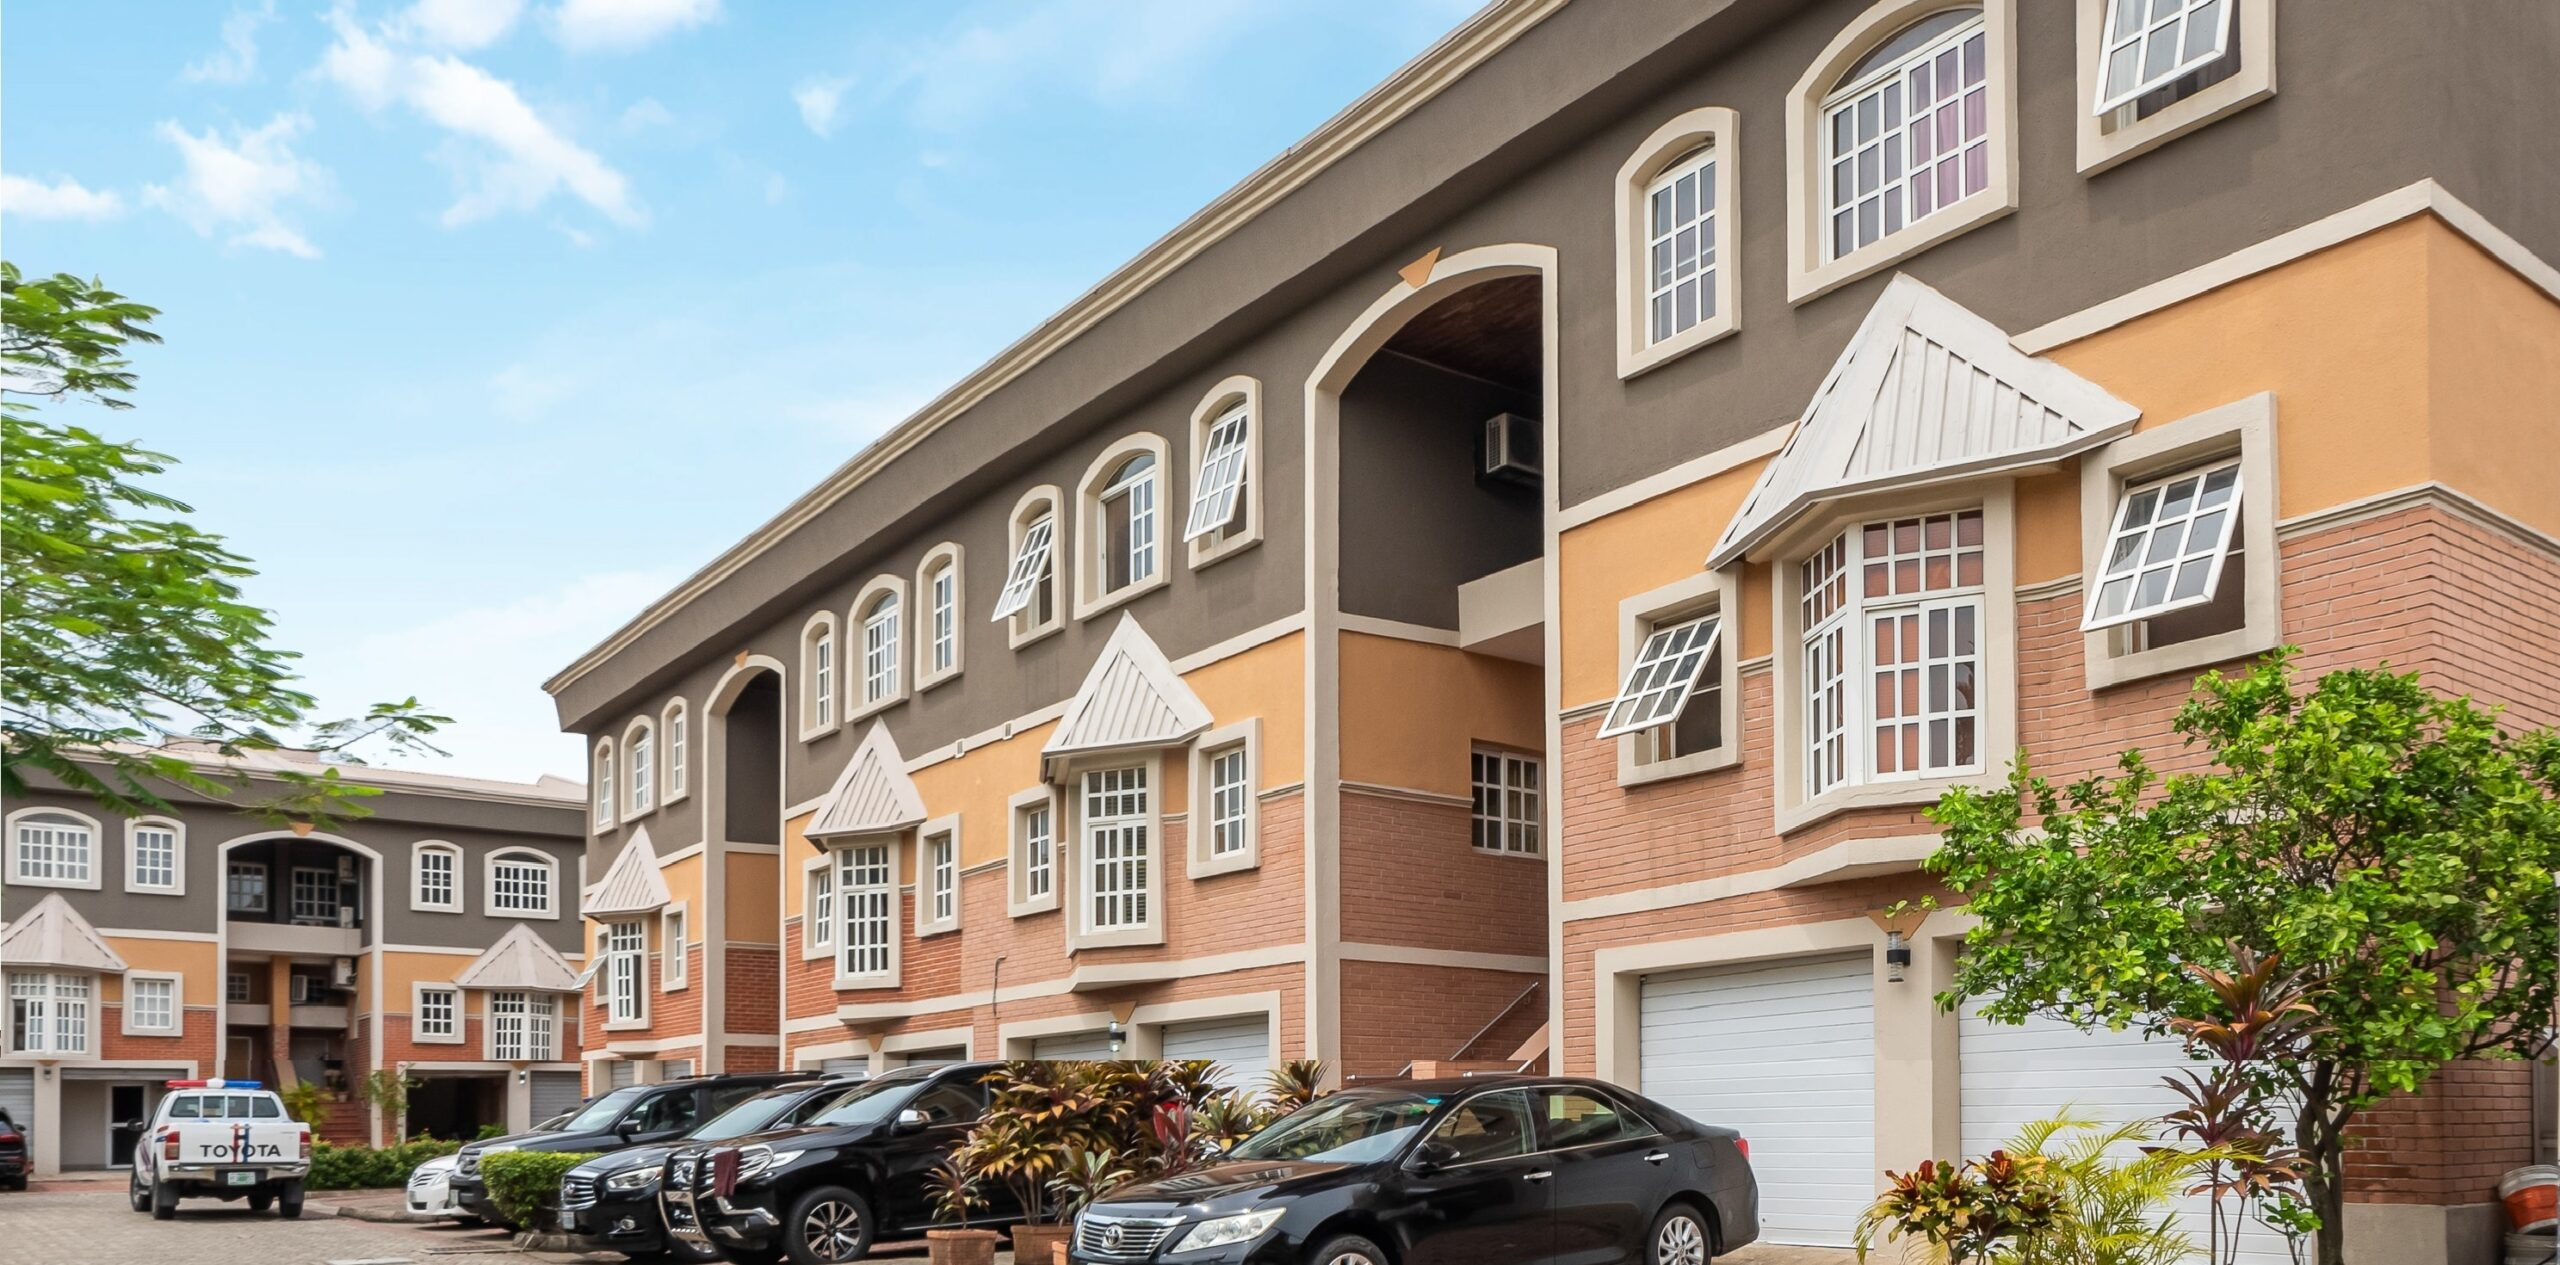 Foreshore Townhouses, Ikoyi